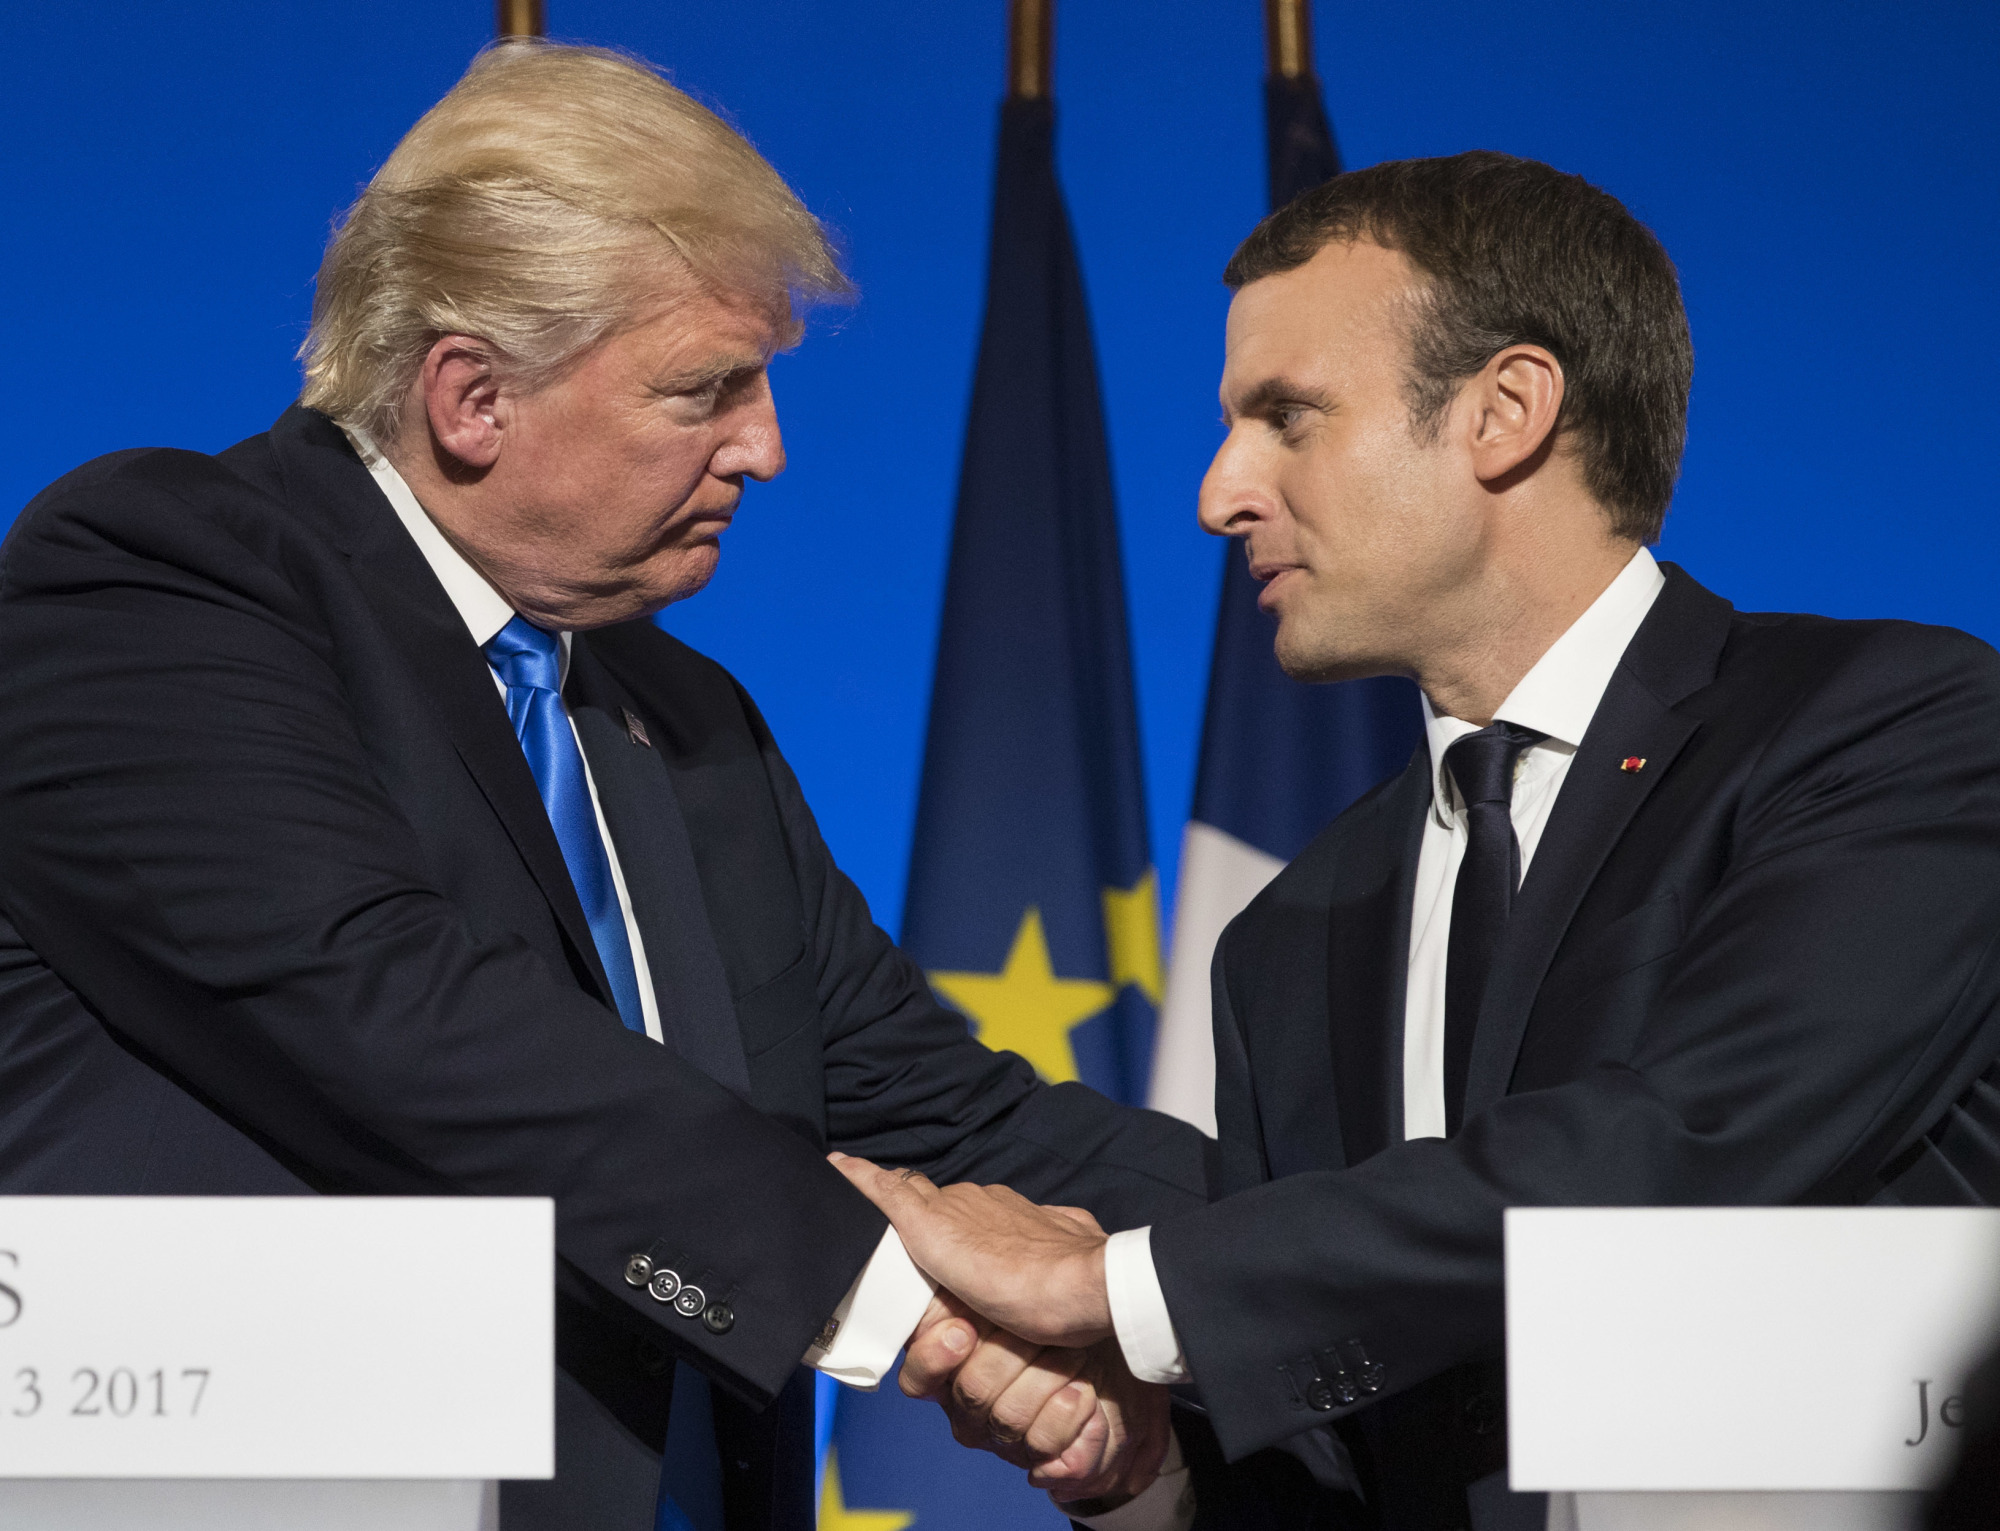 President Donald Trump and French President Emmanuel Macron conclude their joint news conference at the Elysee Palace in Paris Thursday. | AP